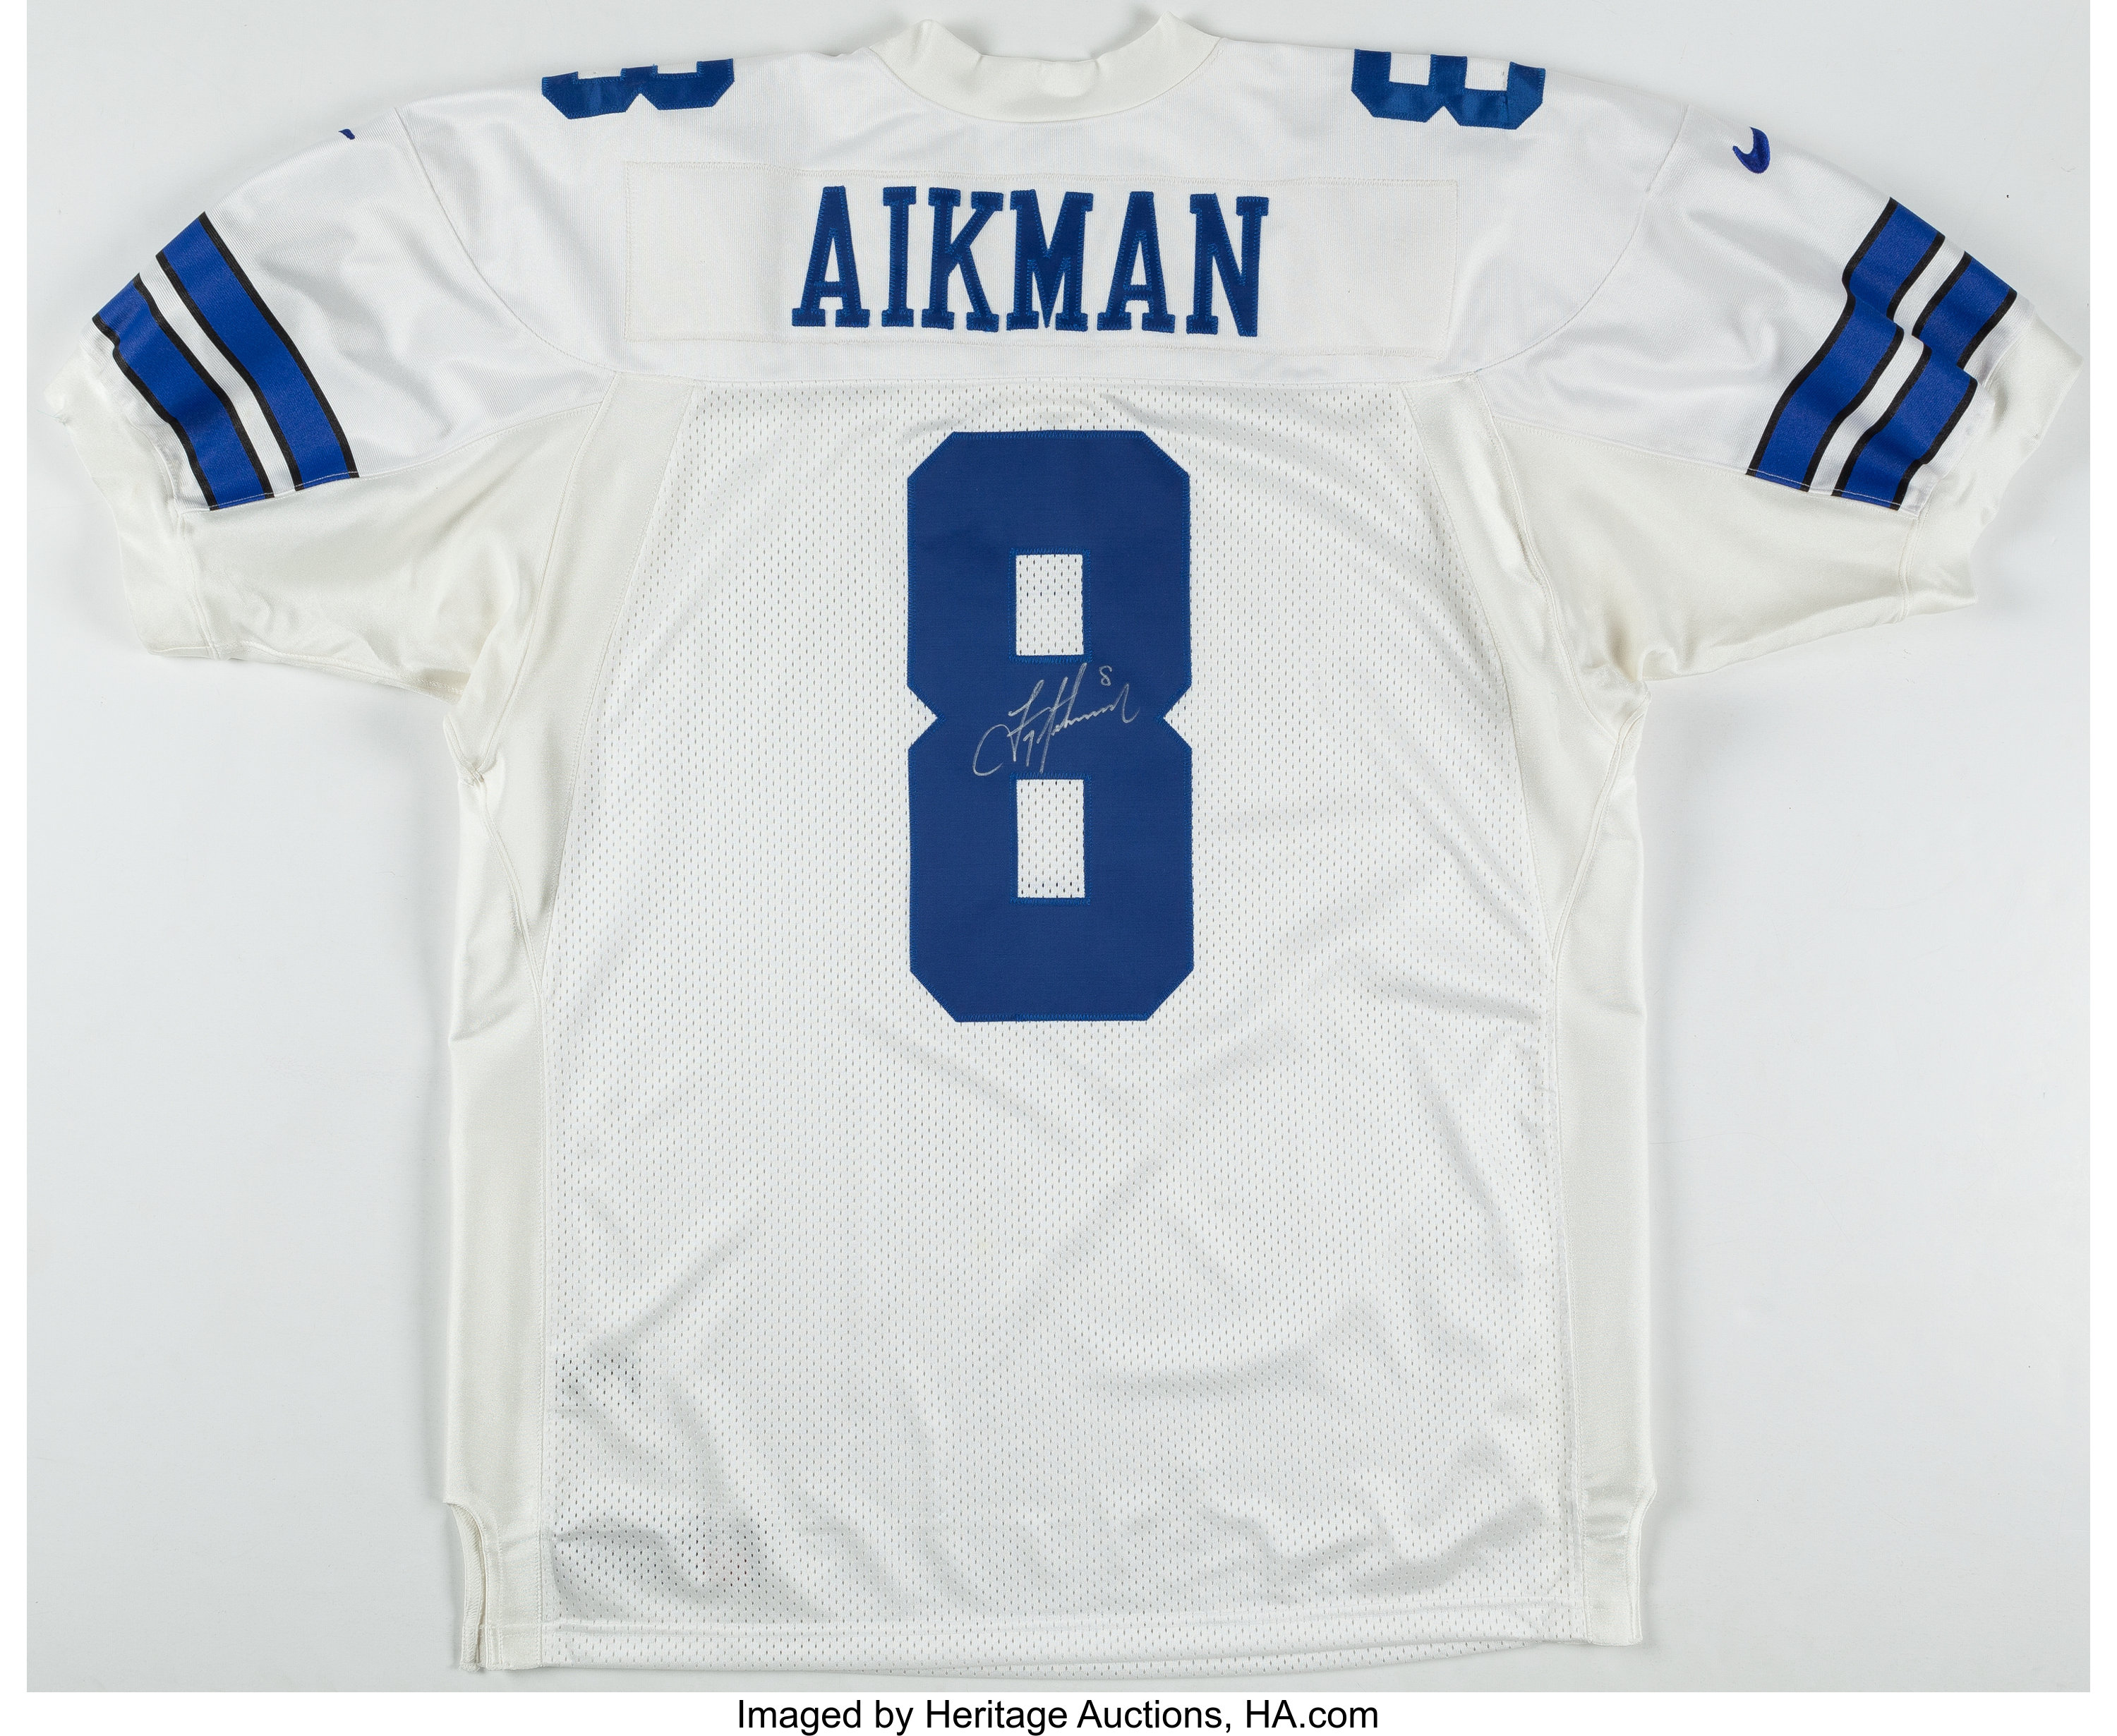 huge selection of a882b 65a06 Troy Aikman Signed Dallas Cowboys Jersey. ... Autographs ...